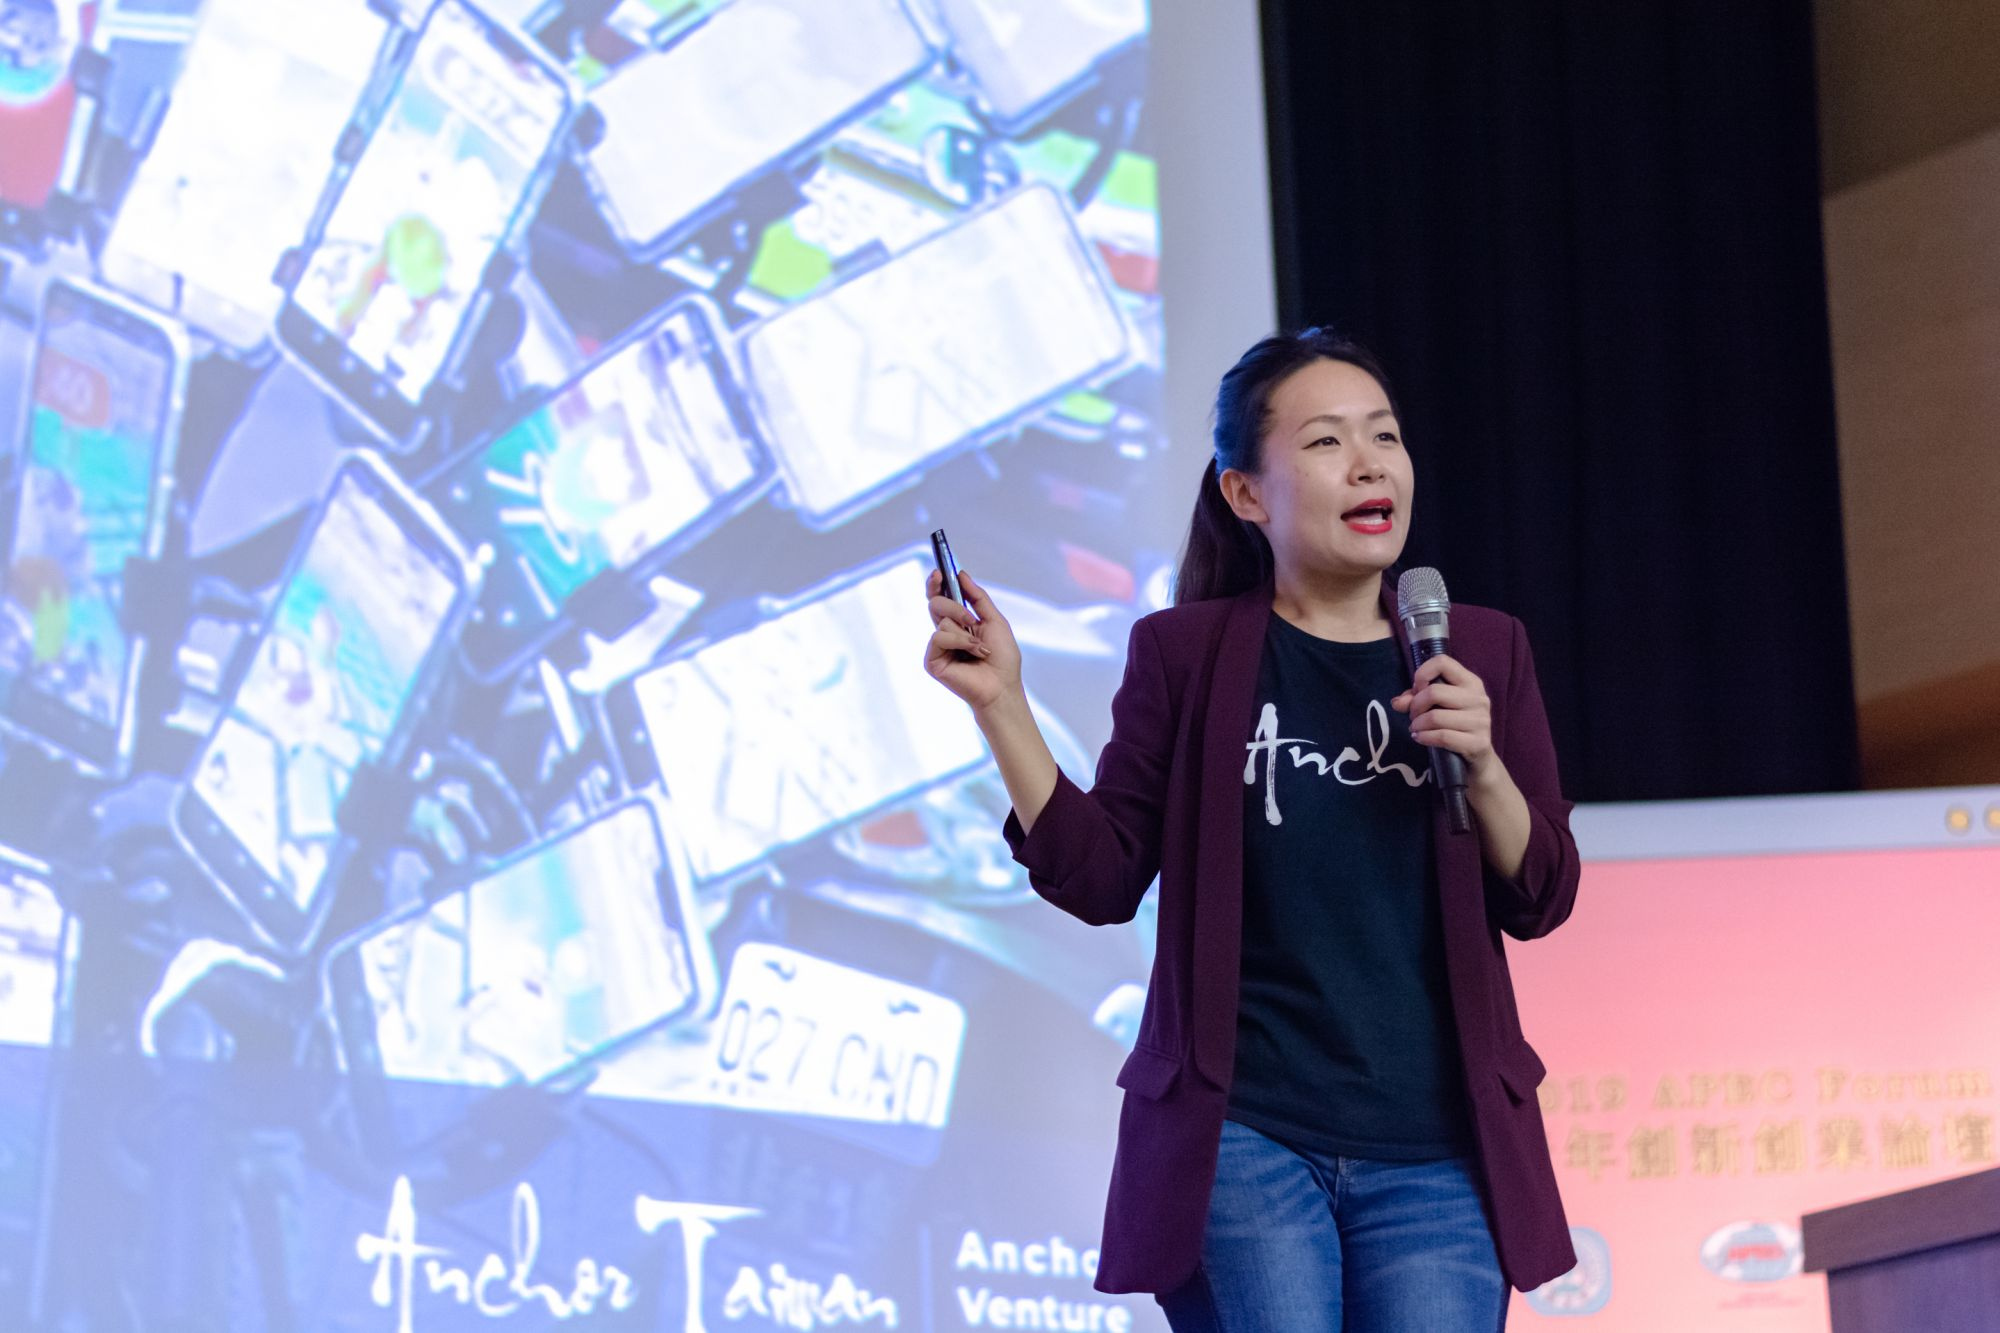 Elisa Chiu, Founder of Anchor Taiwan, On Leaving A High-Paying Job To Build A Global Platform Connecting Startups